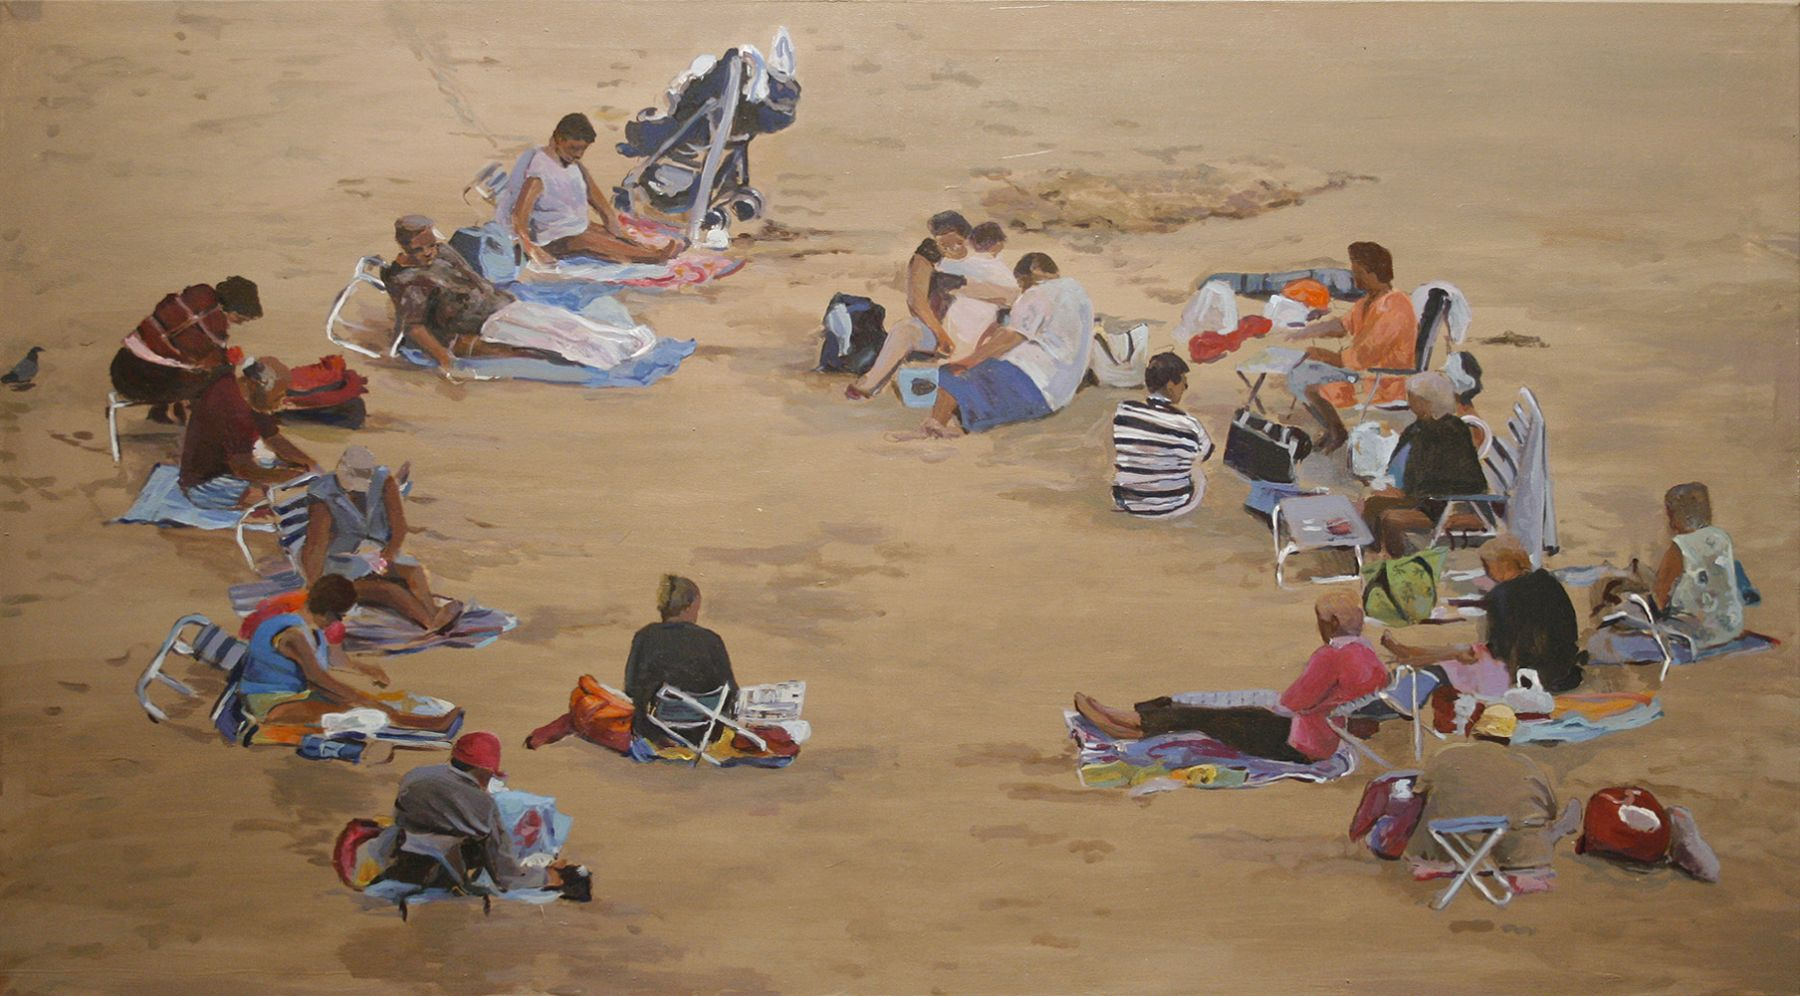 Shoja Azari & Shahram Karimi, Family Playing, 2006, Video painting - acrylic on canvas, 29 x 52 inches